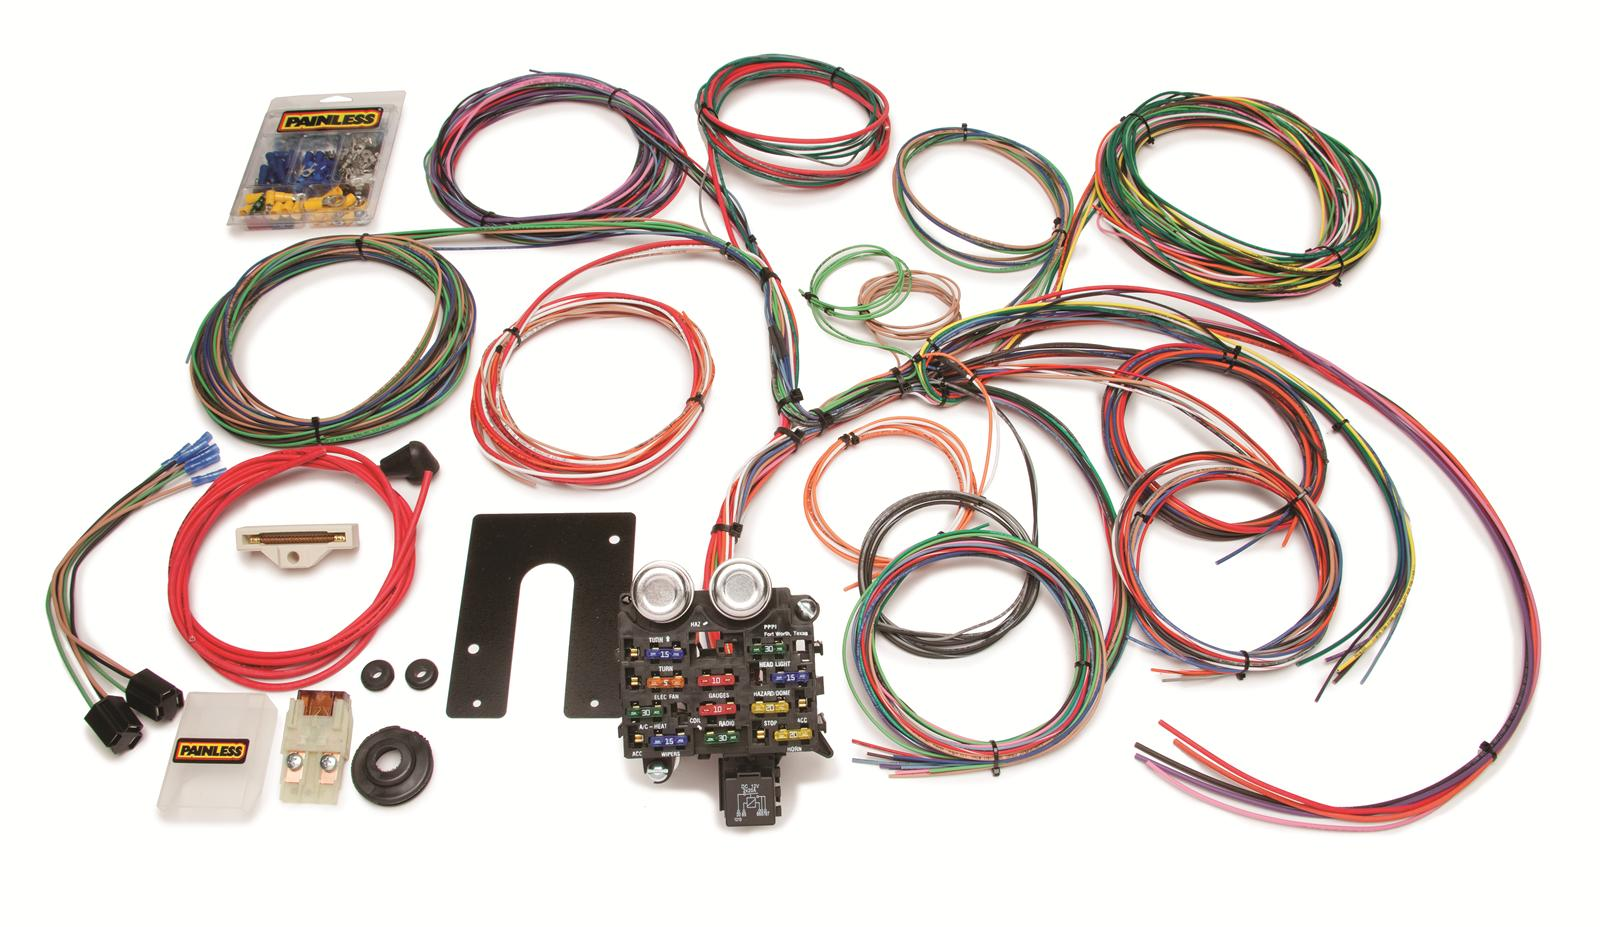 1977 Jeep Cj5 Wiring Harness 28 Diagram Images Cj7 Technical Prf 10105 Xl Painless Performance 22 Circuit Cj Harnesses Free